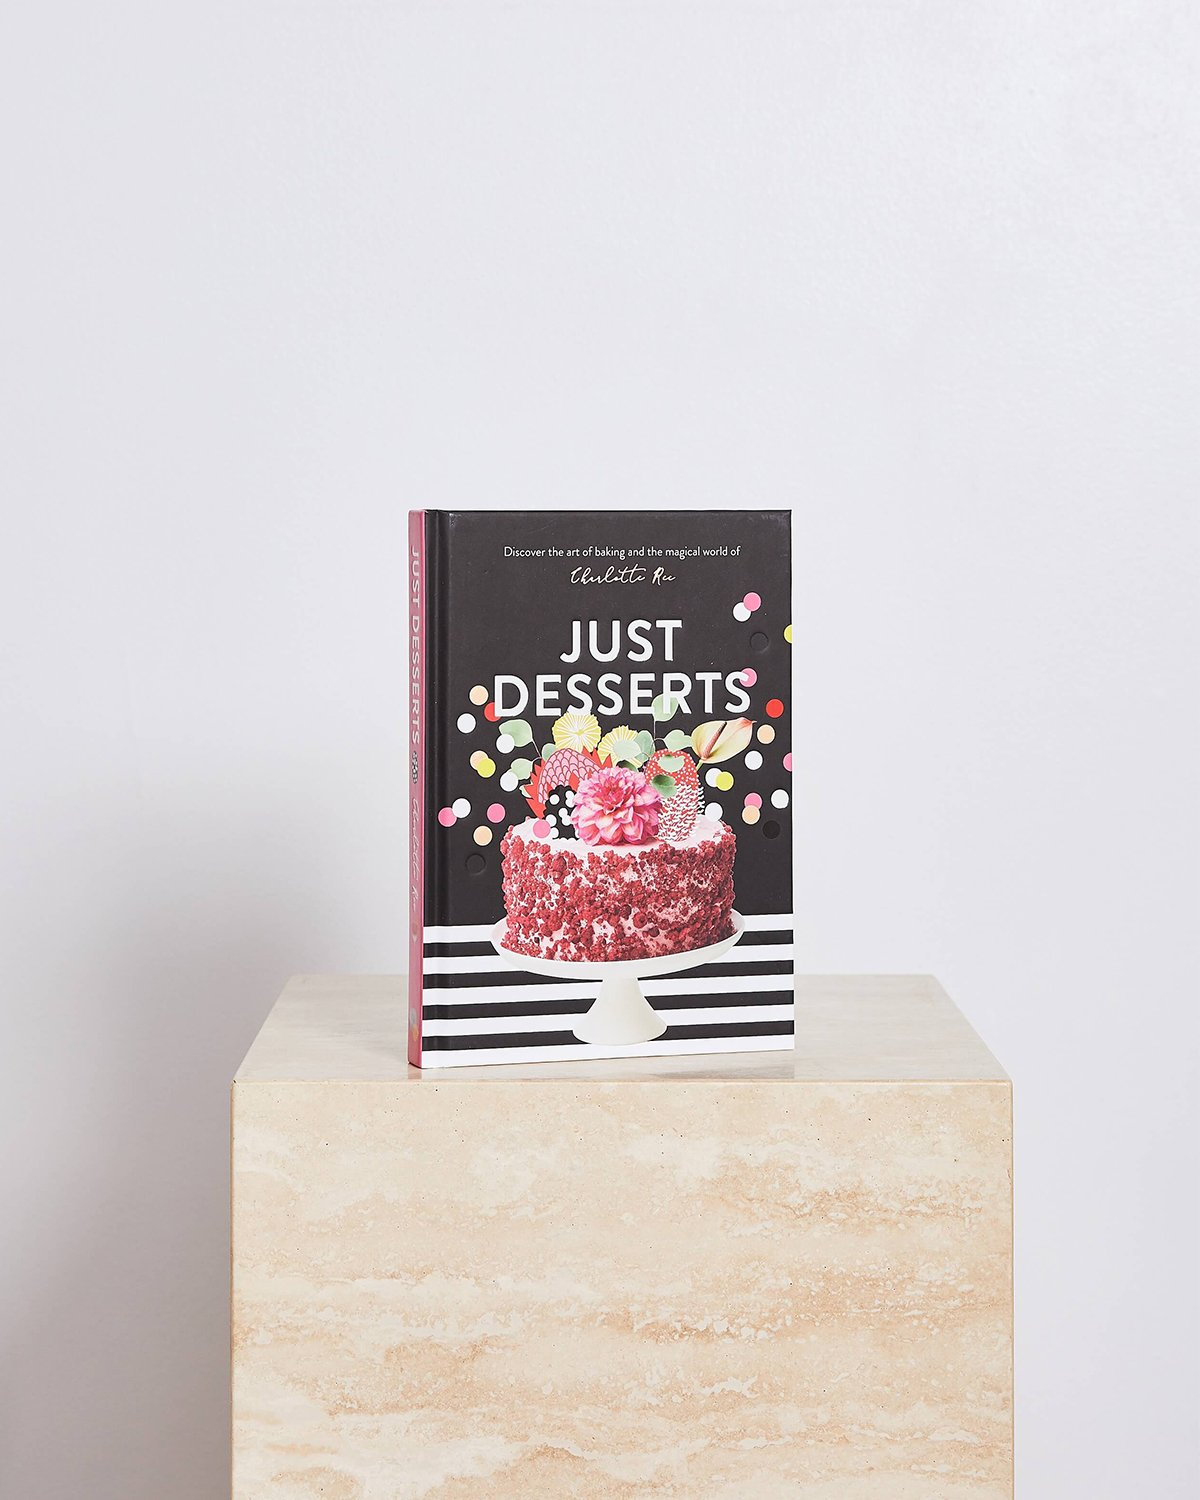 Just Desserts by Charlotte Ree